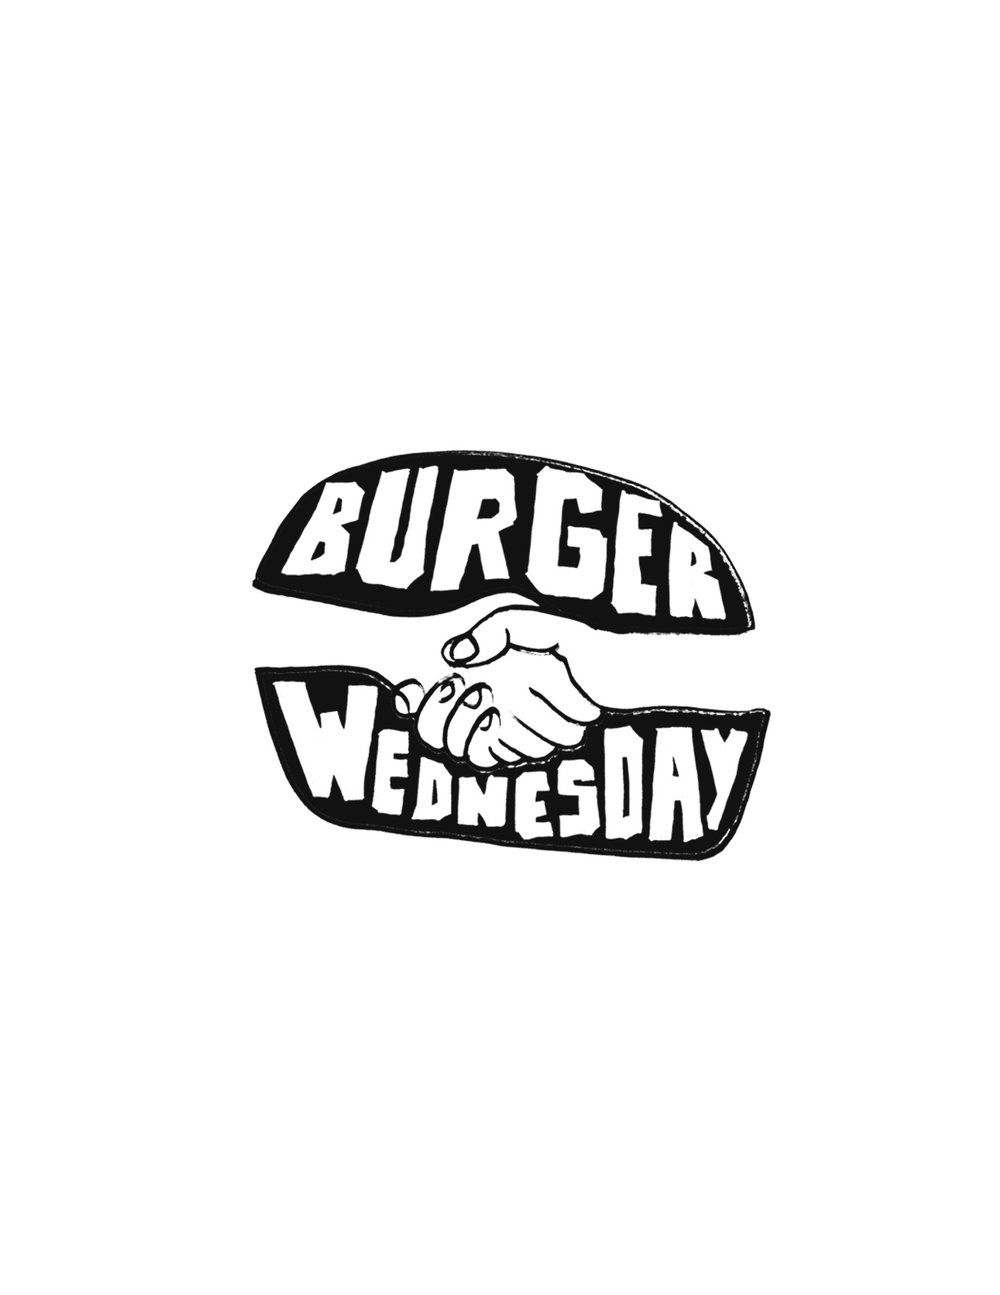 burger wednesday logo.jpg